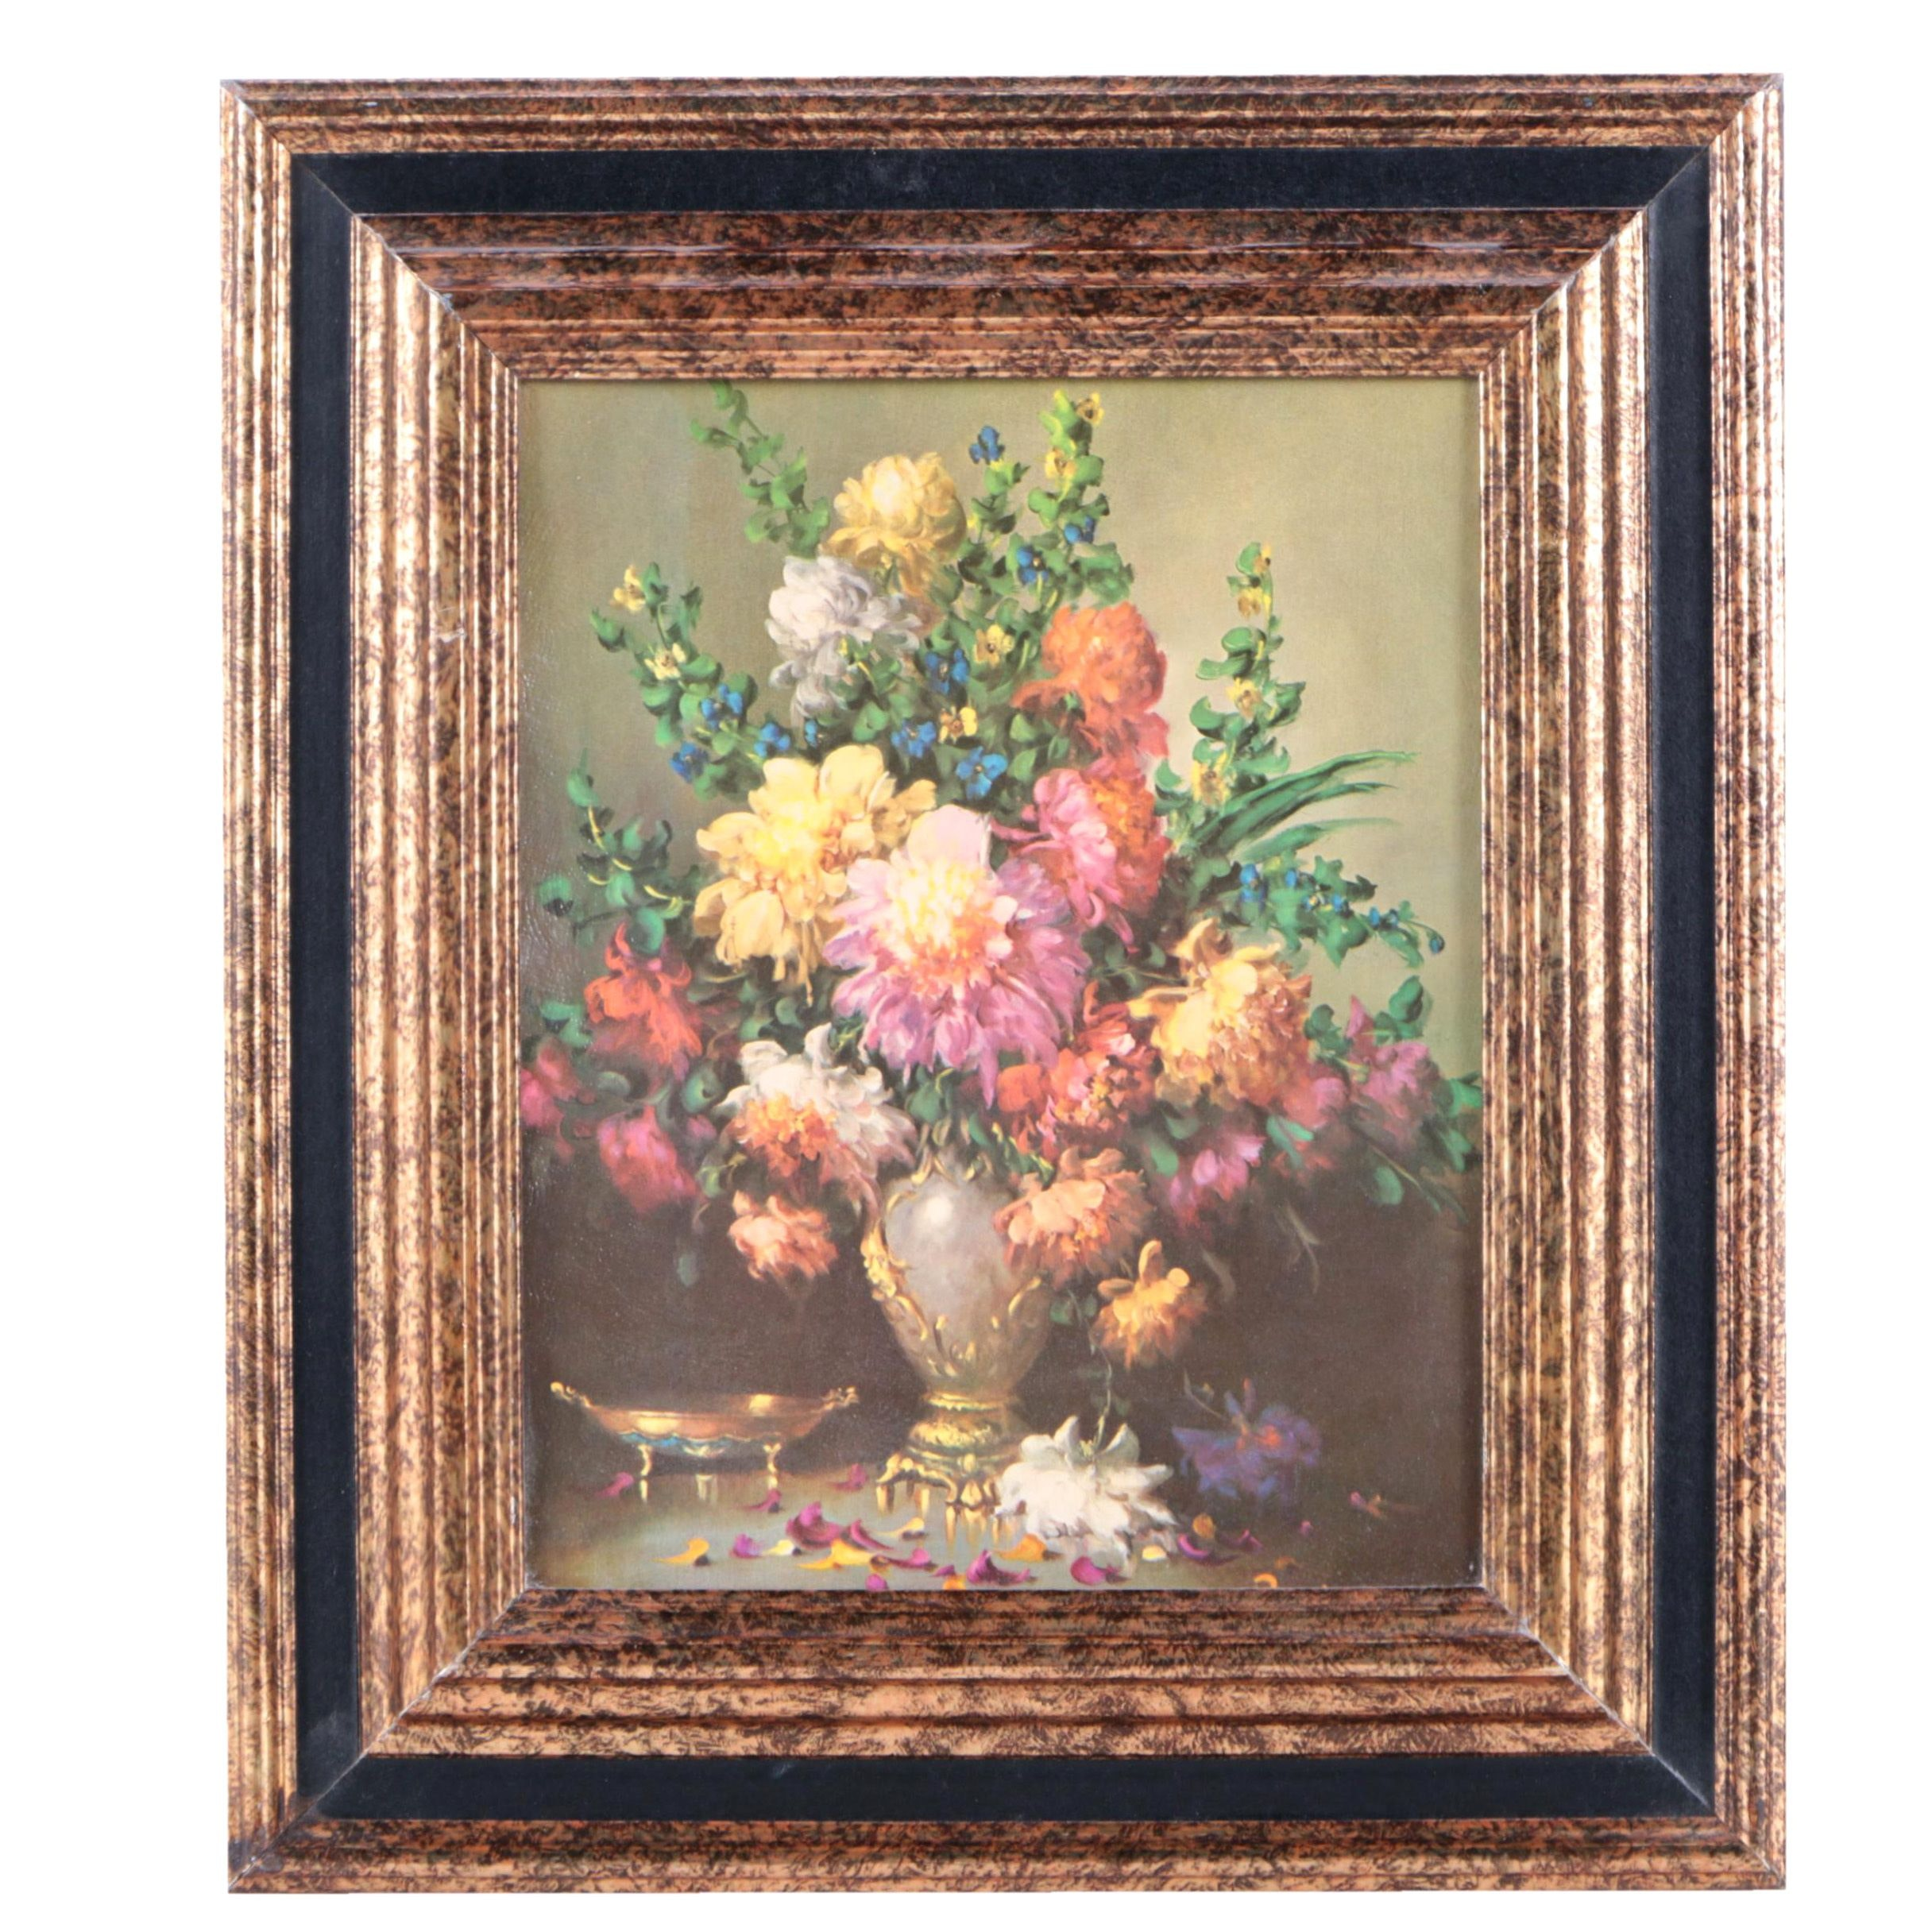 Vintage Turner Wall Accessory Offset Lithograph of a Floral Still Life